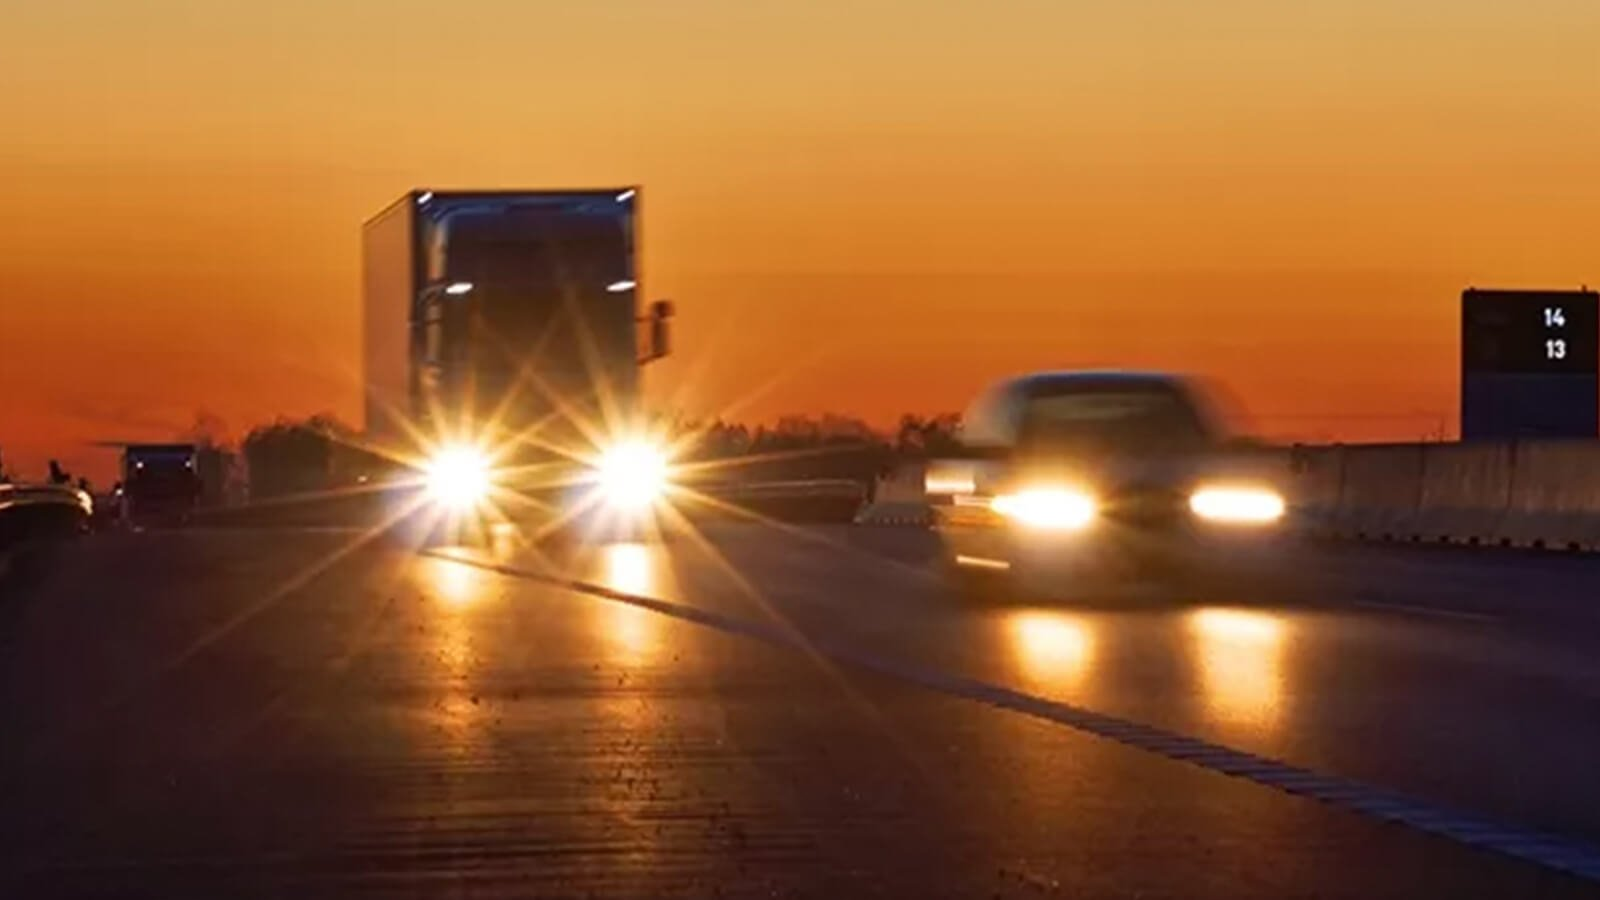 How does glare hit you while driving?